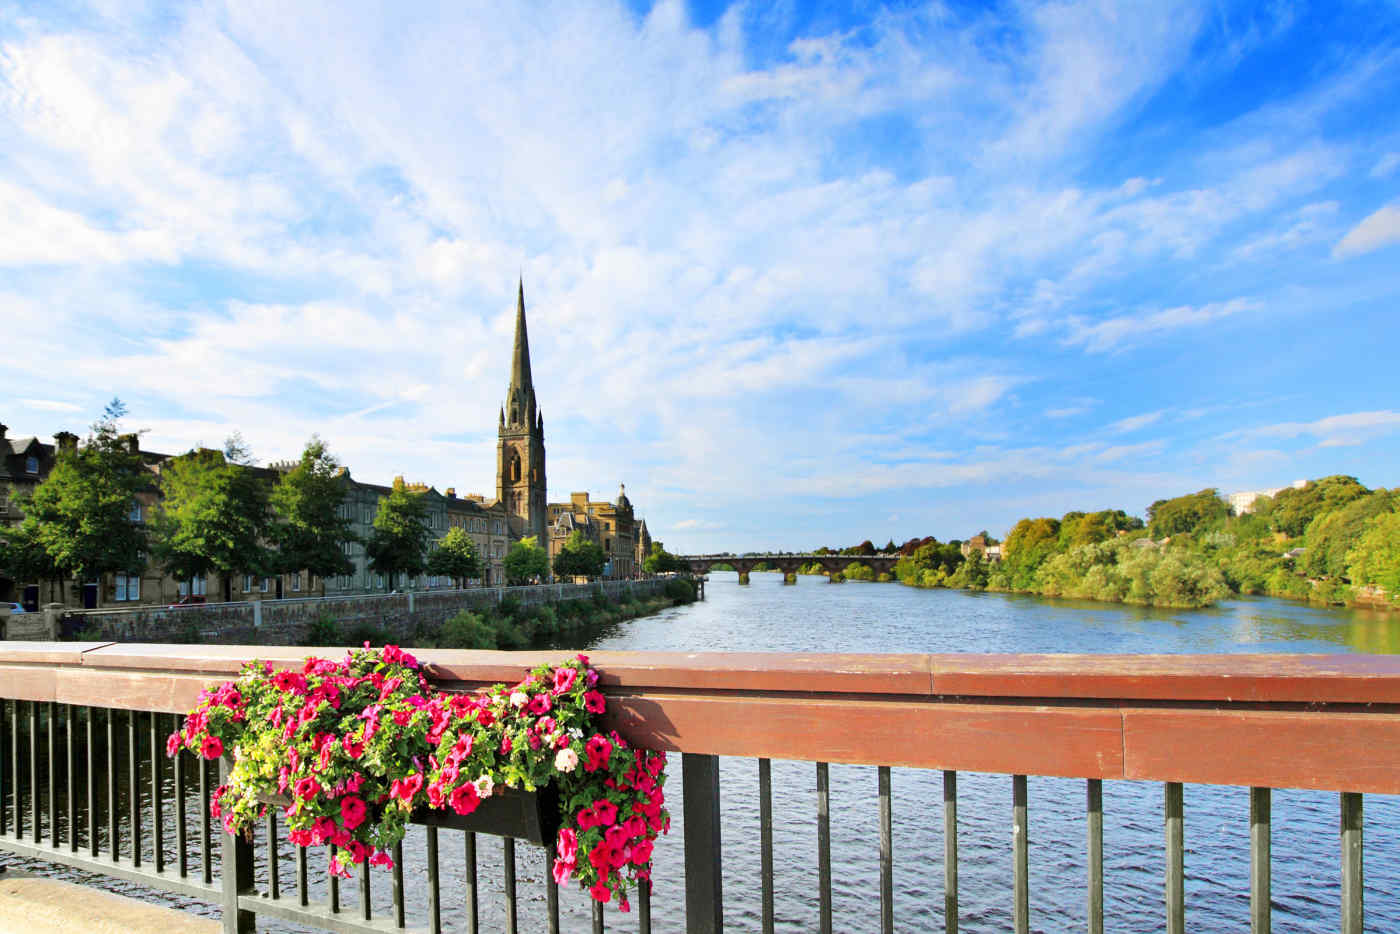 River Tay in Perth, Scotland